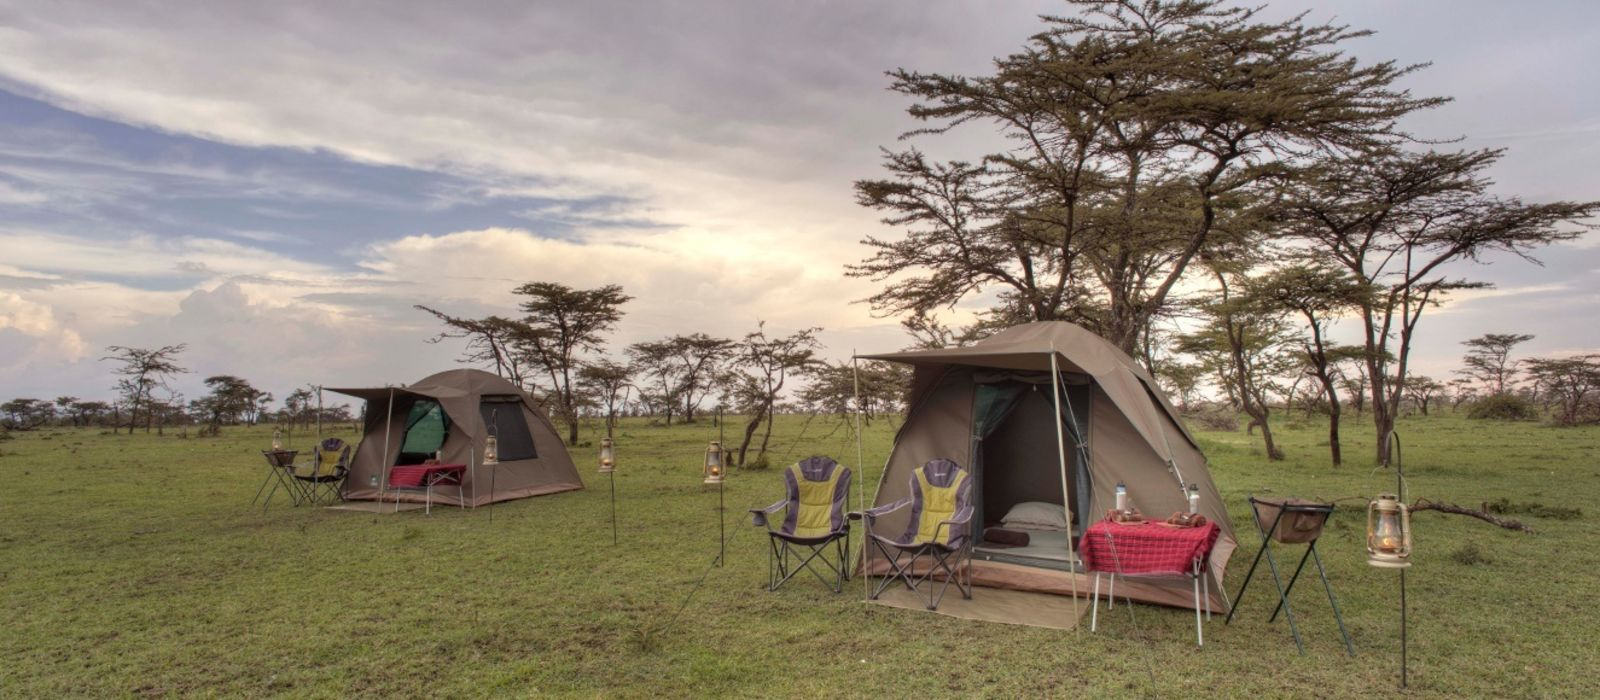 Hotel Fly Camp Kenia